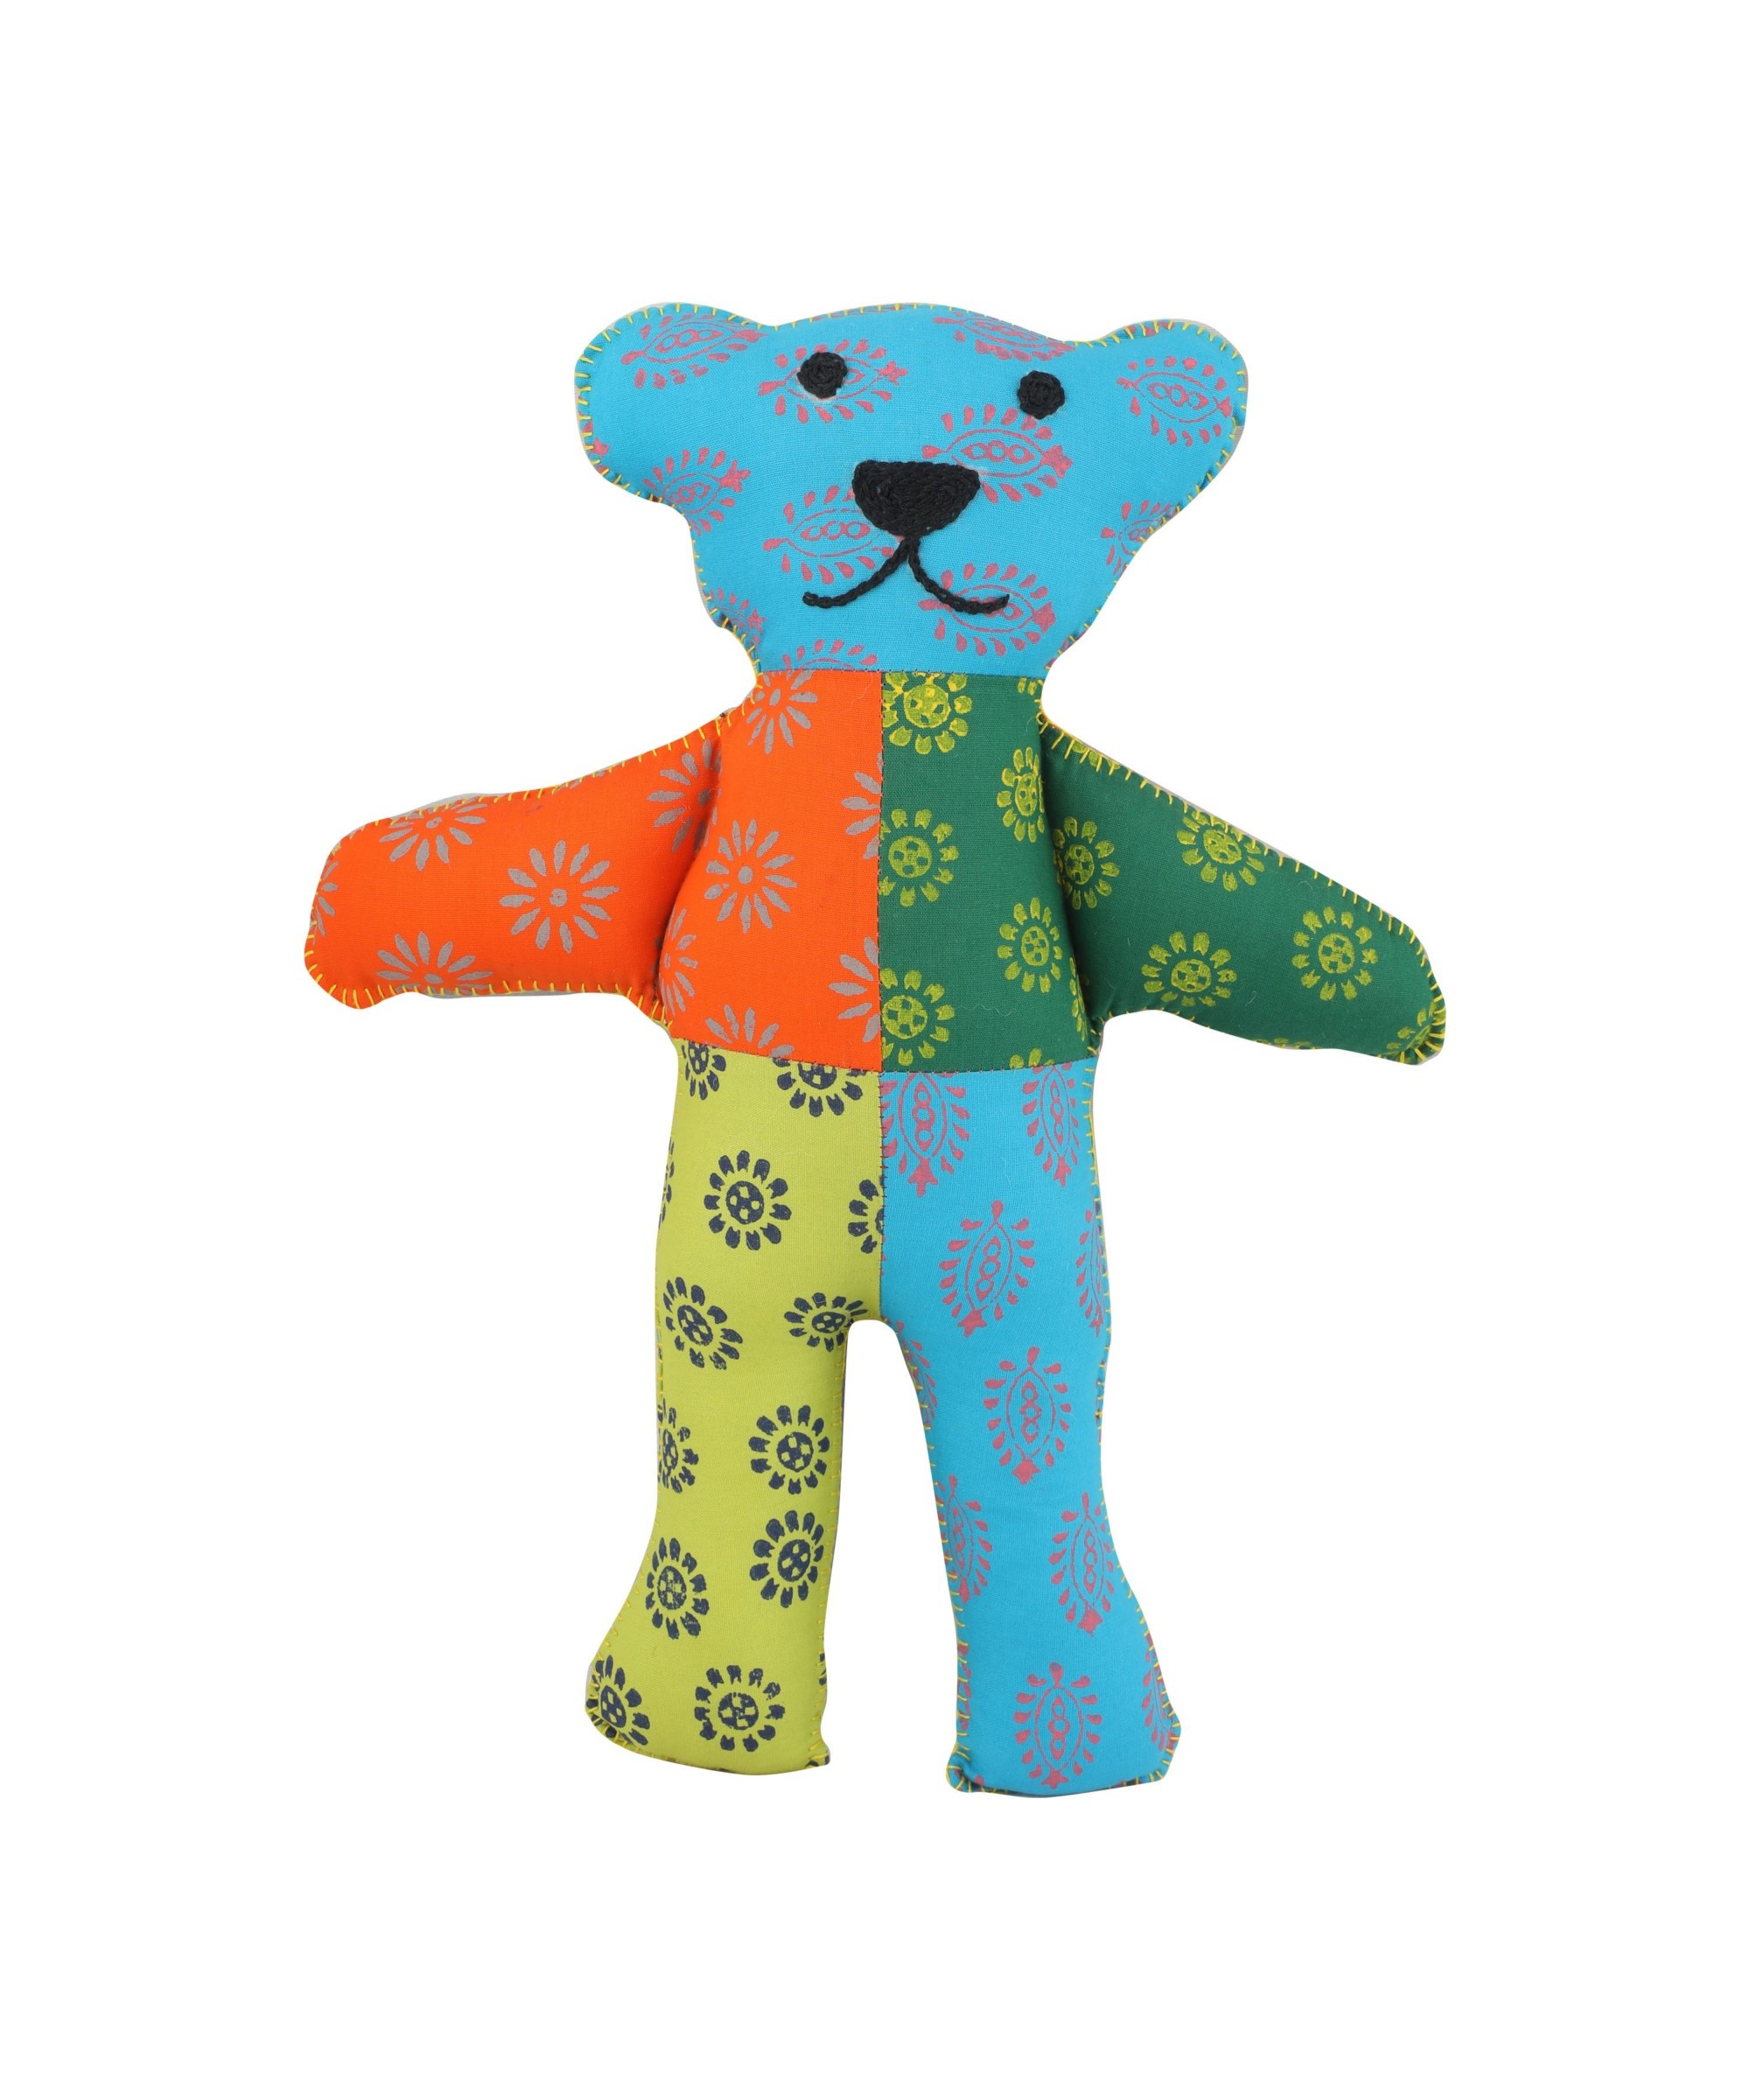 Patchwork Block Printed Soft Toy - Teddy (Multicoloured)